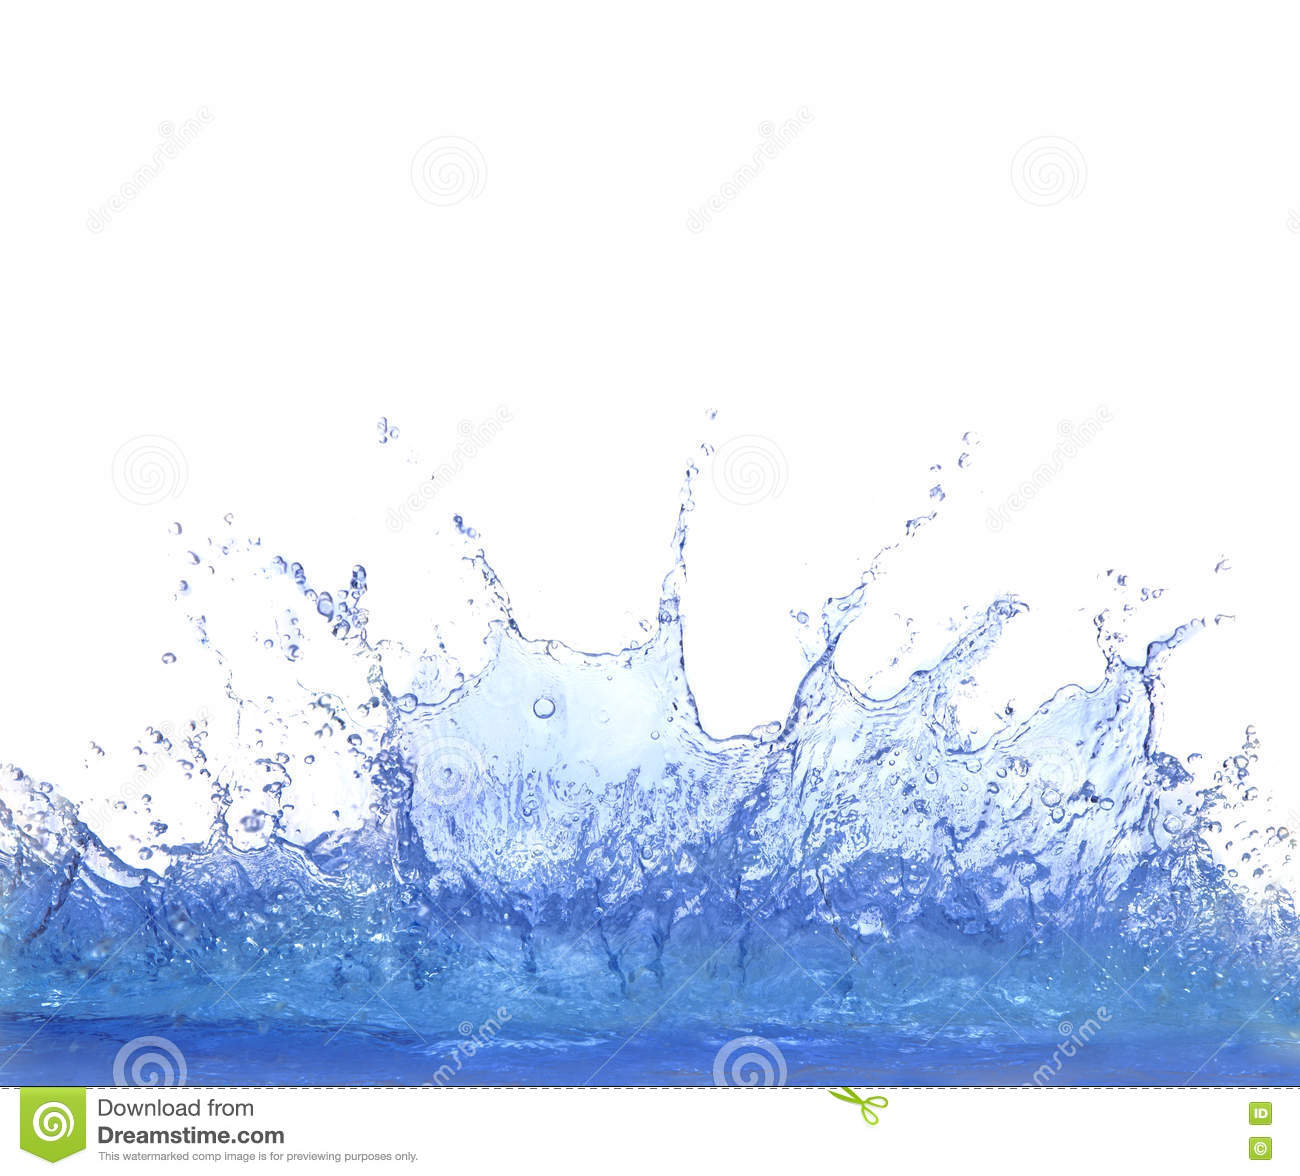 Clear blue water splashing isolate on white background